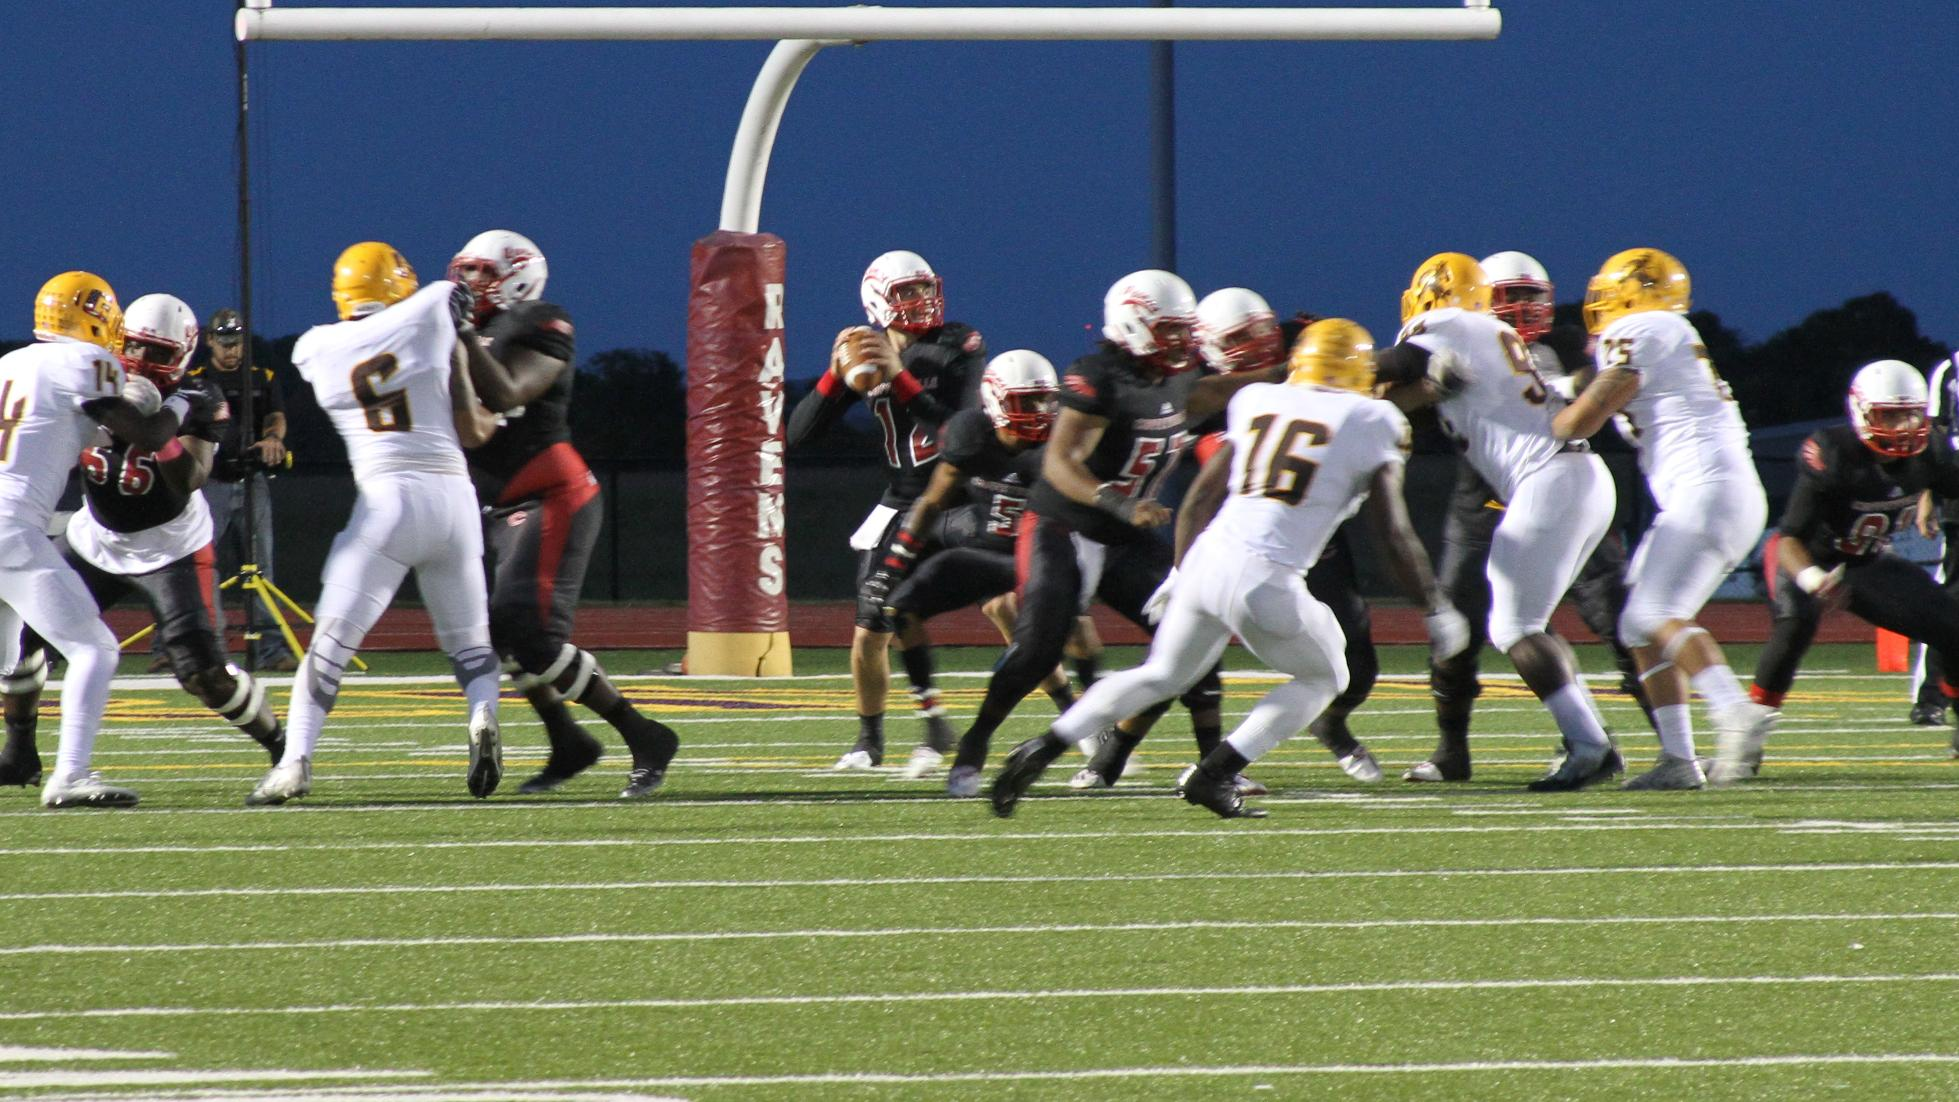 Ravens Can't Hold Onto the #3 Broncbusters, Lose 13-39